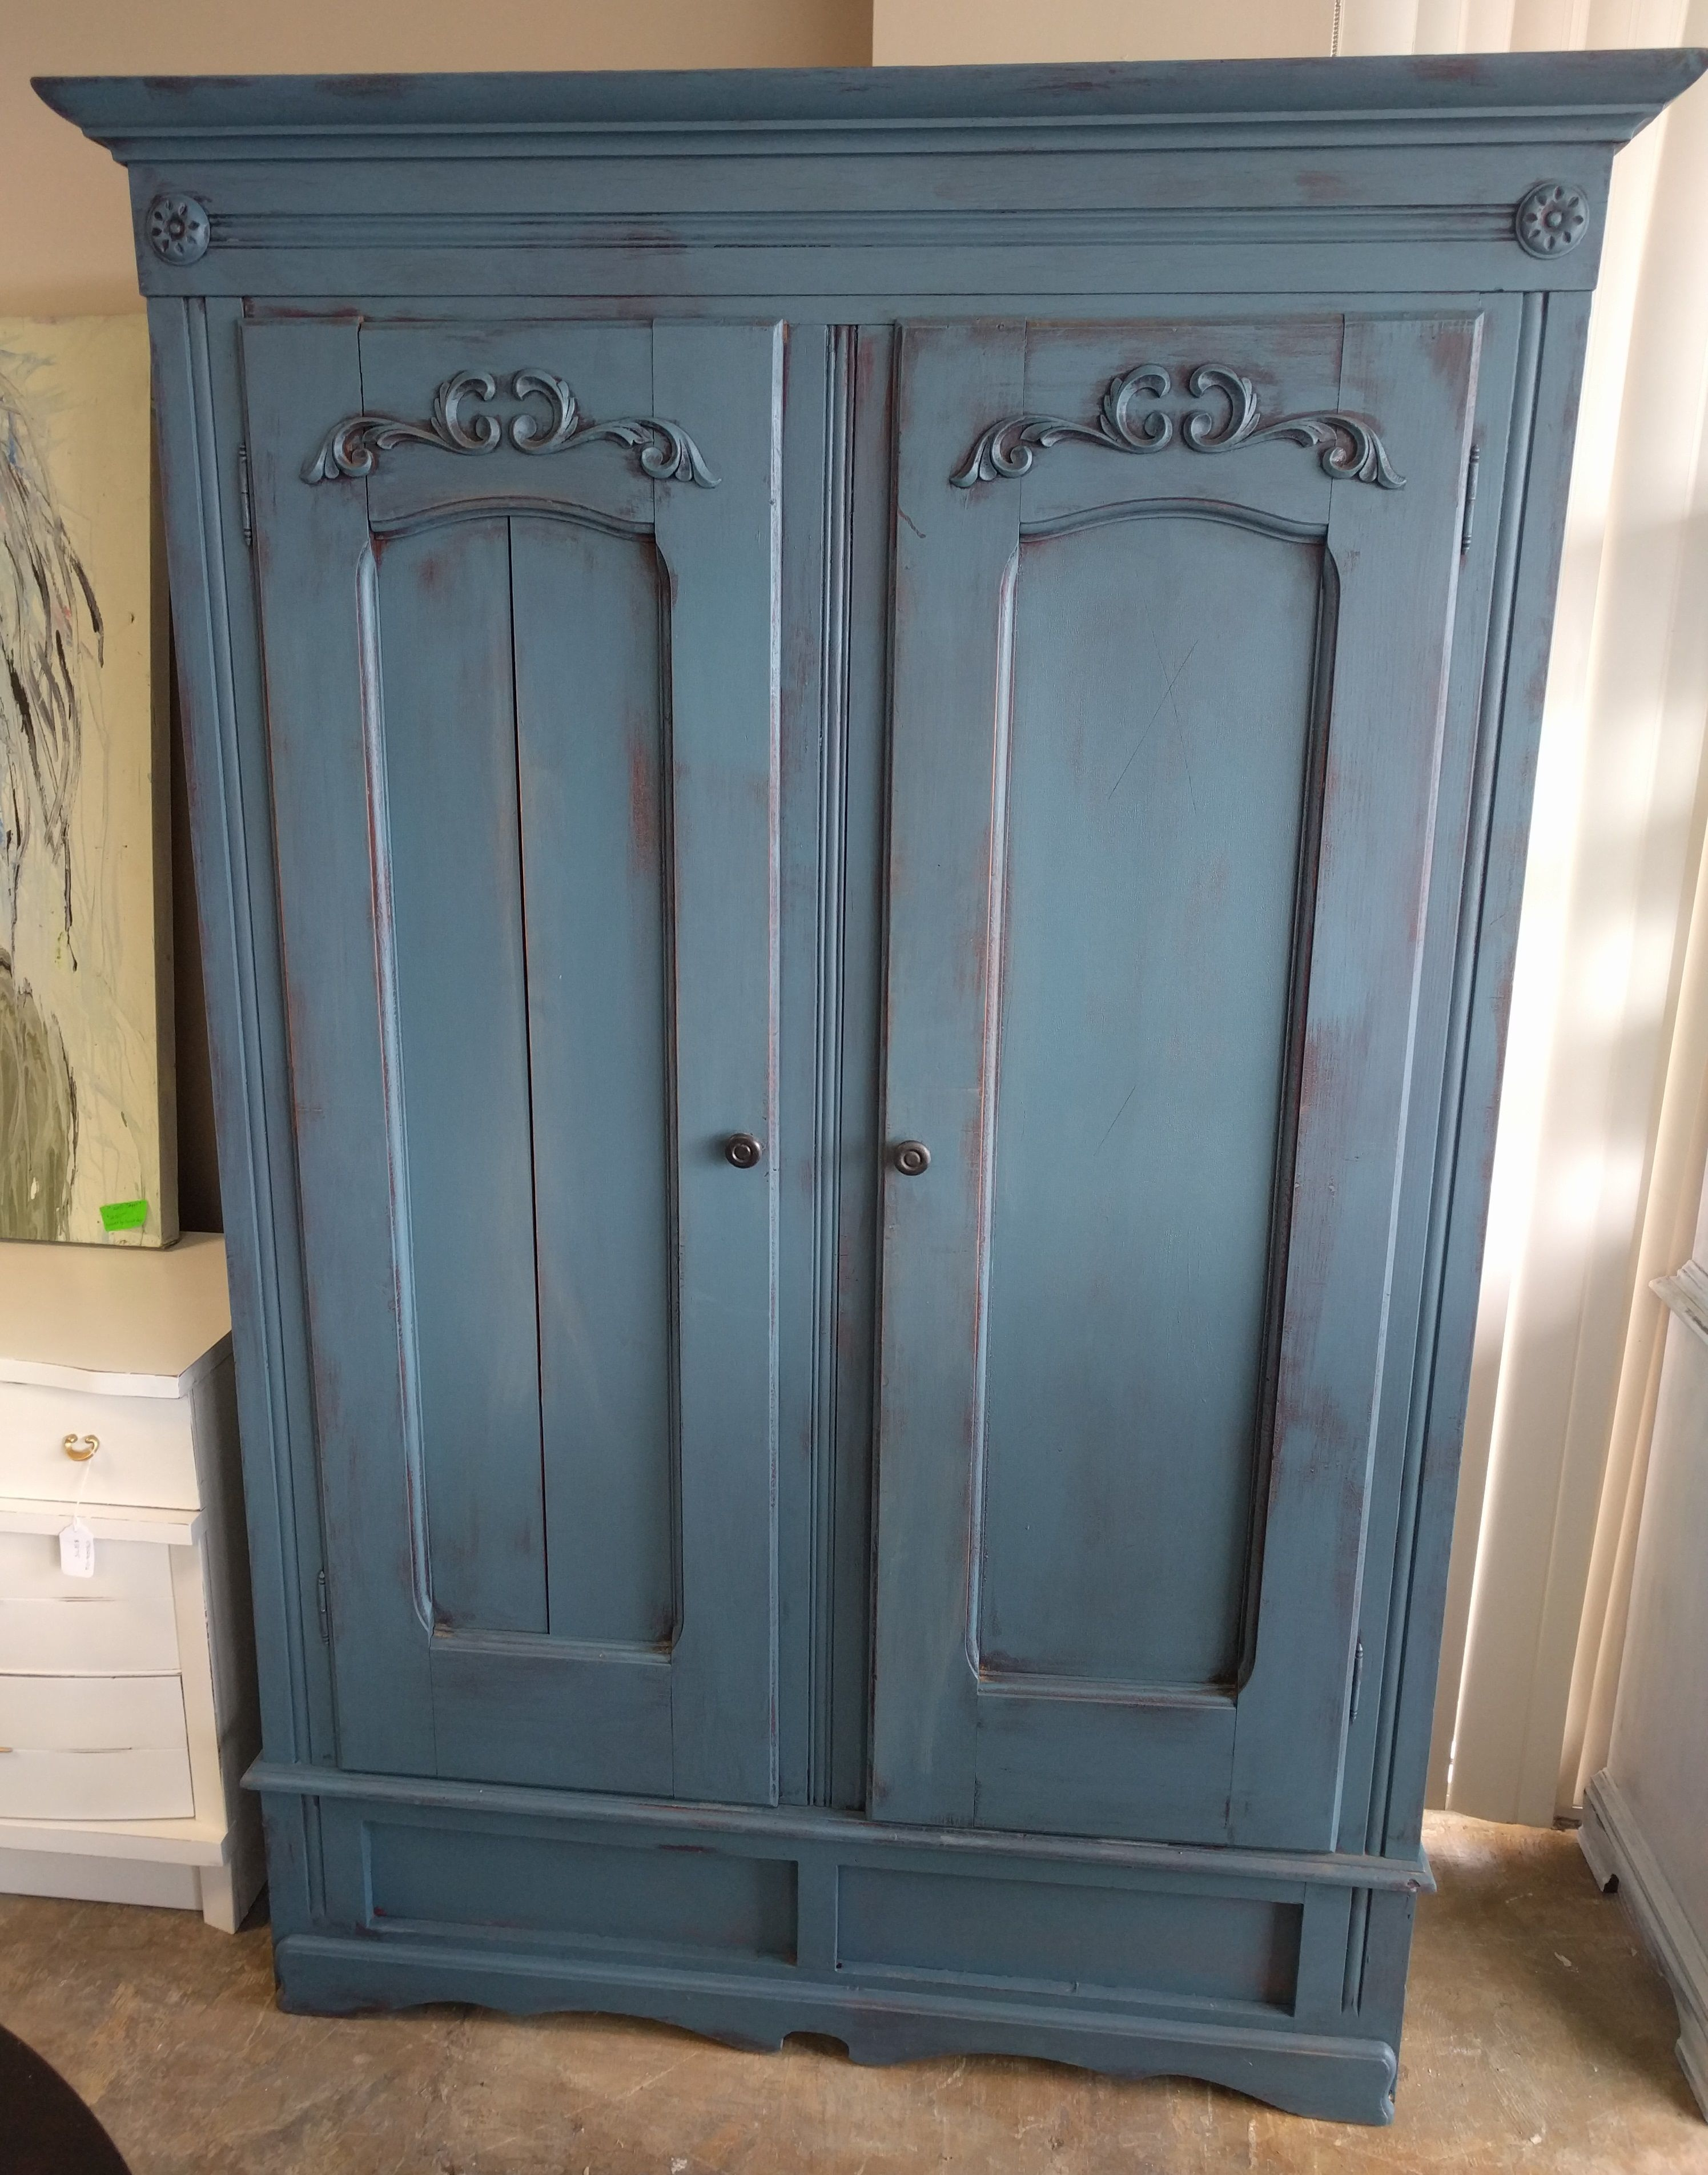 This Is A Gorgeous Antique Wardrobe Armoire That I Painted A Smokey Blue Color What Do You Think The Antique Wardrobe Shabby Chic Painting Gorgeous Antiques